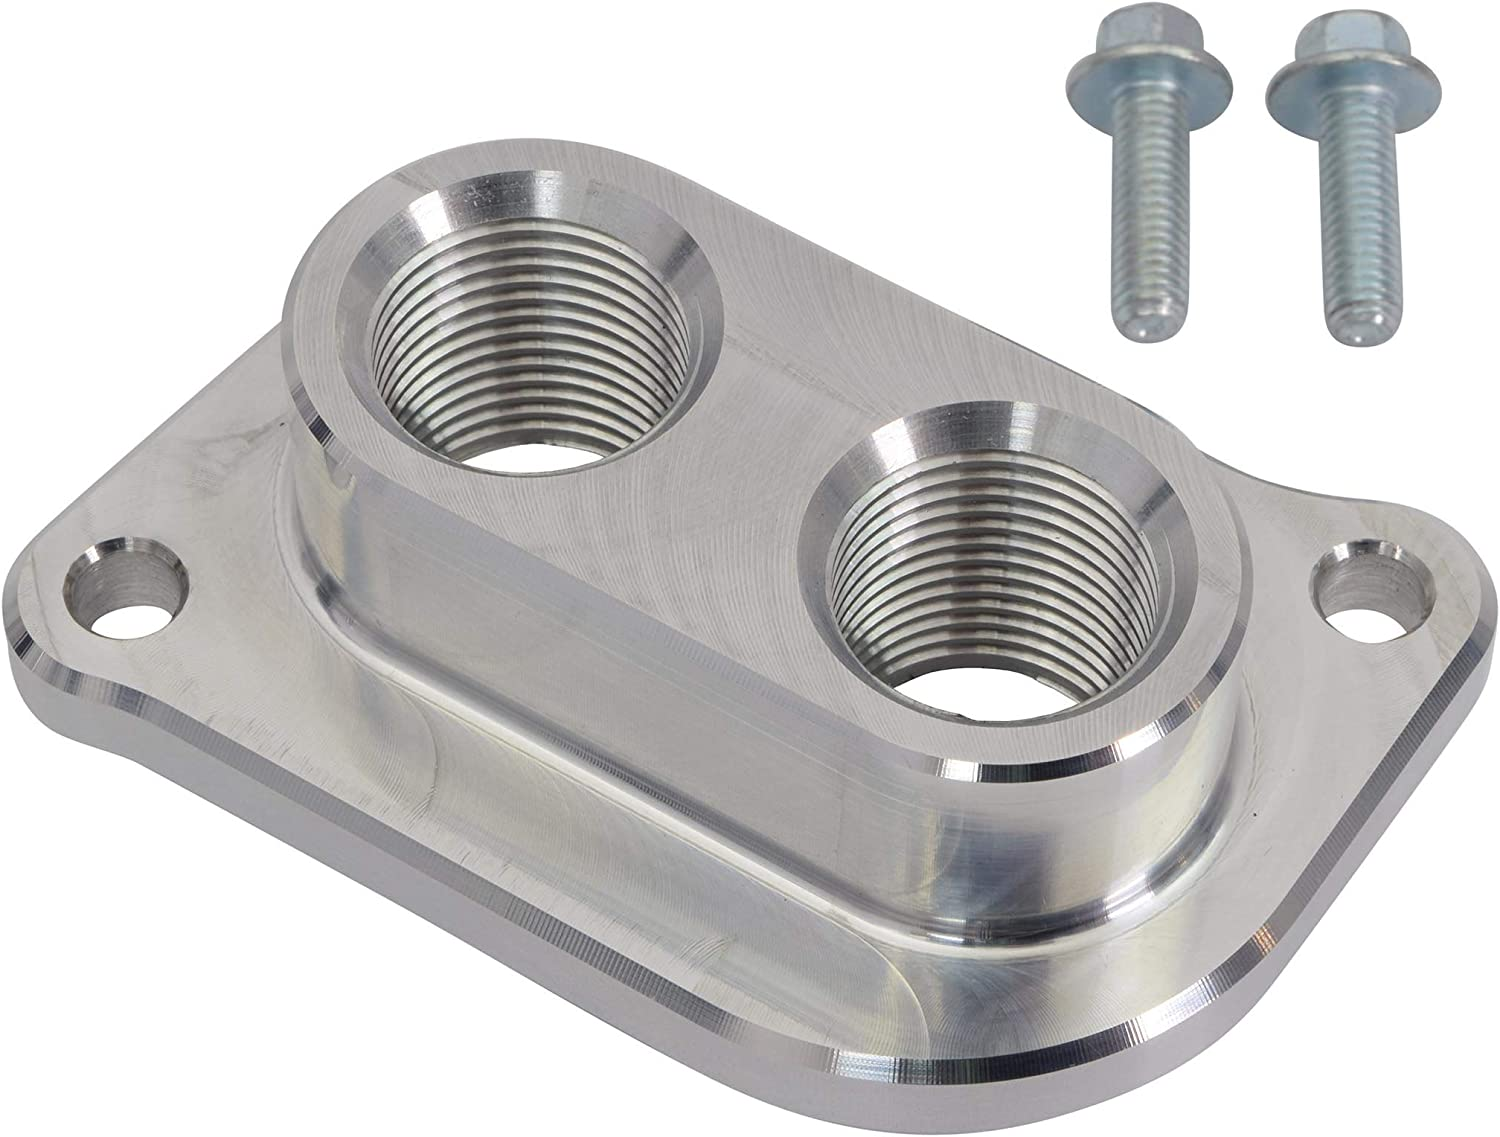 ICT Billet 10AN ORB Intercooler Fitting Water Manifold Adapter Compatible with CTS-V LSA Supercharger Lid Designed /& Manufactured in the USA CTSV 551701Z